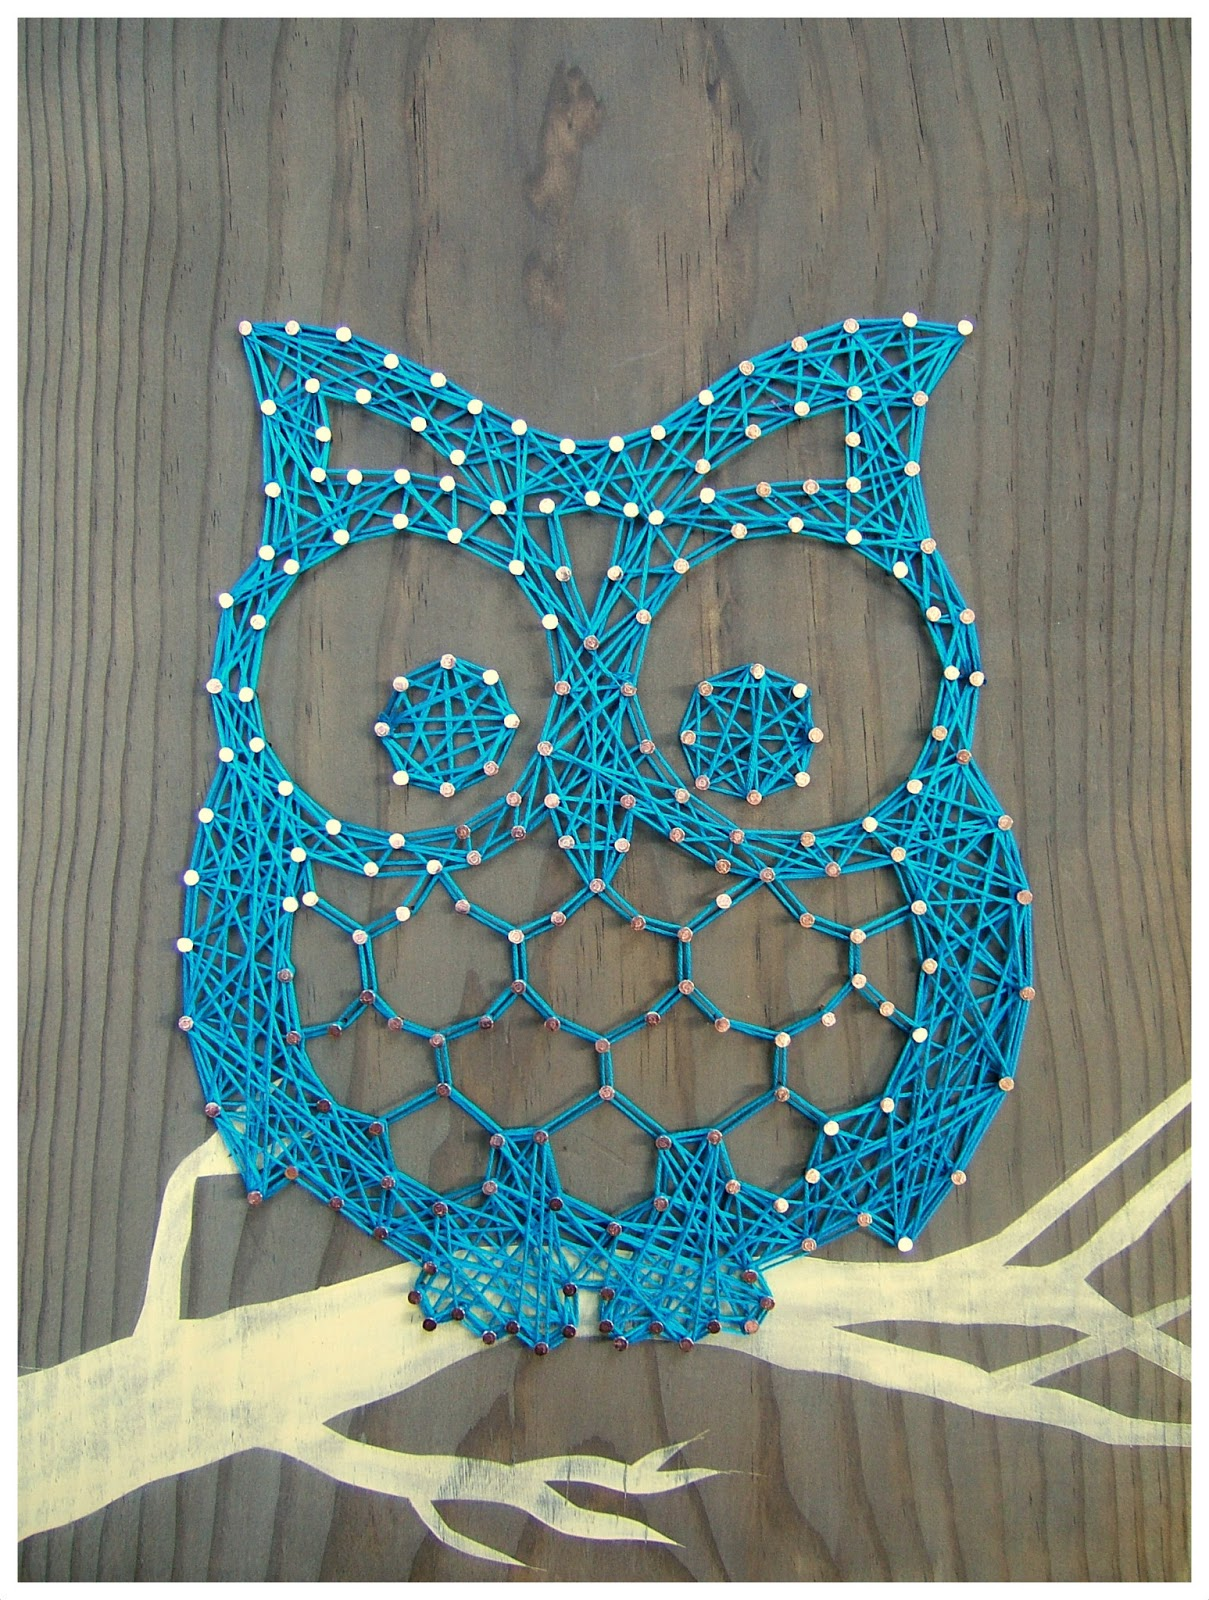 String Art: Otis the Owl